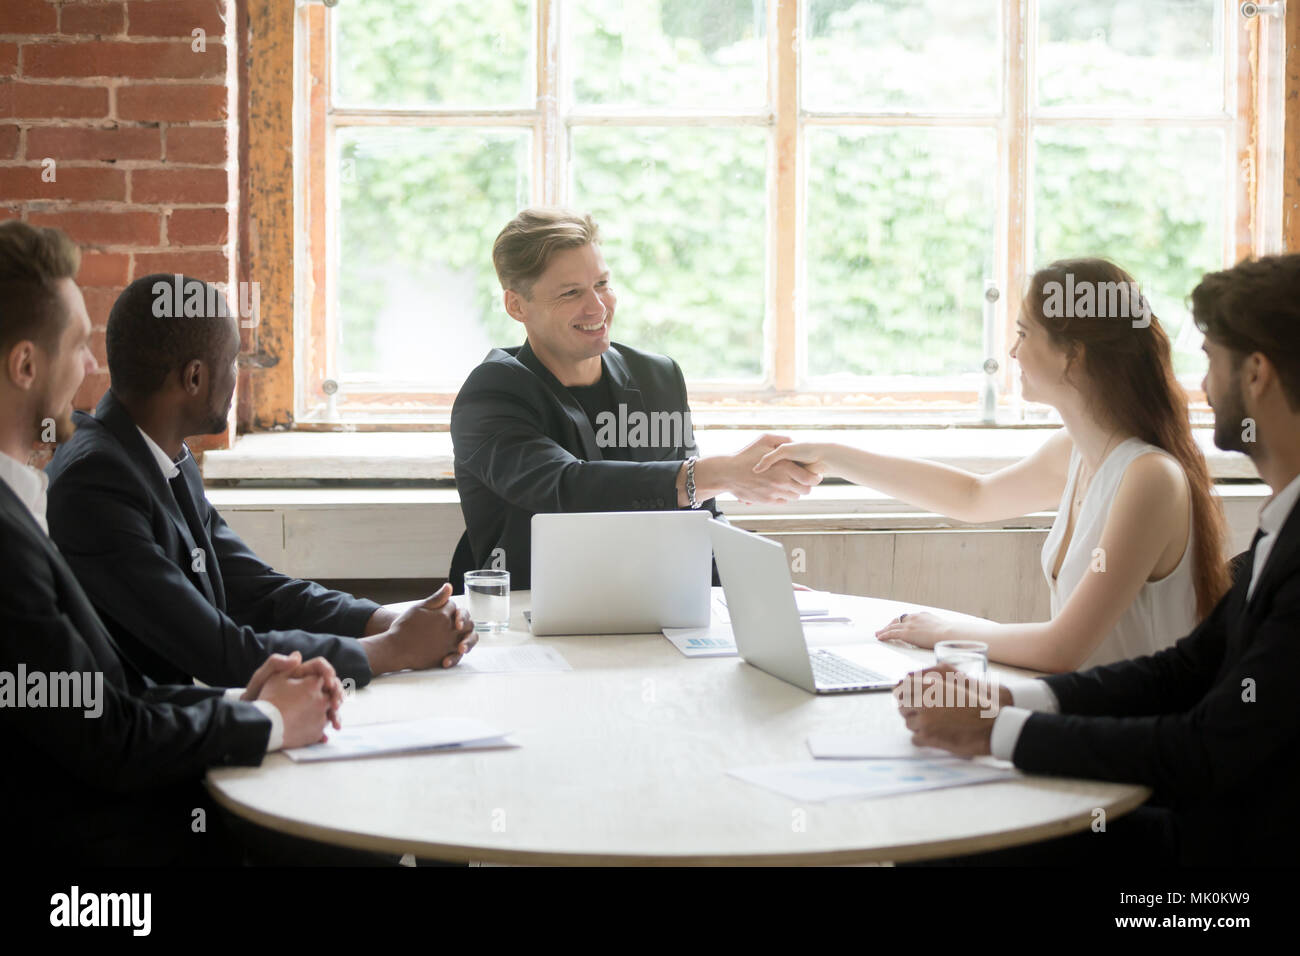 Smiling CEO greeting female business colleague by handshake - Stock Image